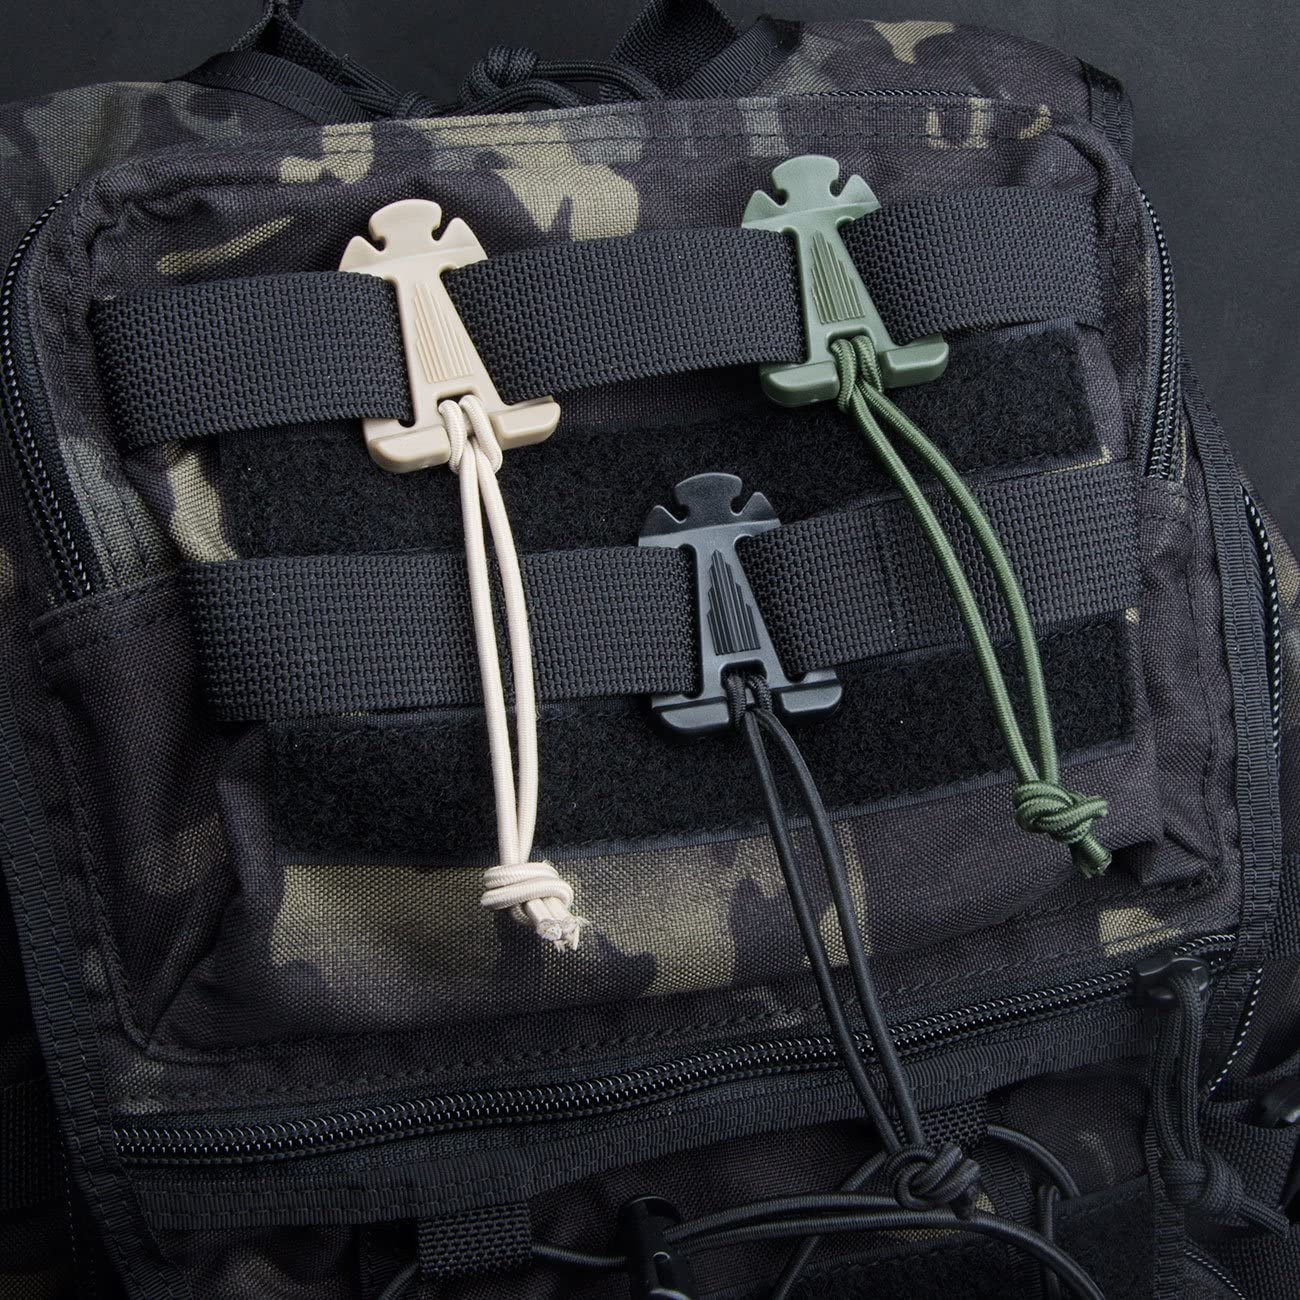 Tactical Gear Clip DYZD 4pcs MOLLE Web Dominators with Elastic String Multipurpose Fastener durable Tactical Strap Management Tool Backpack Accessories